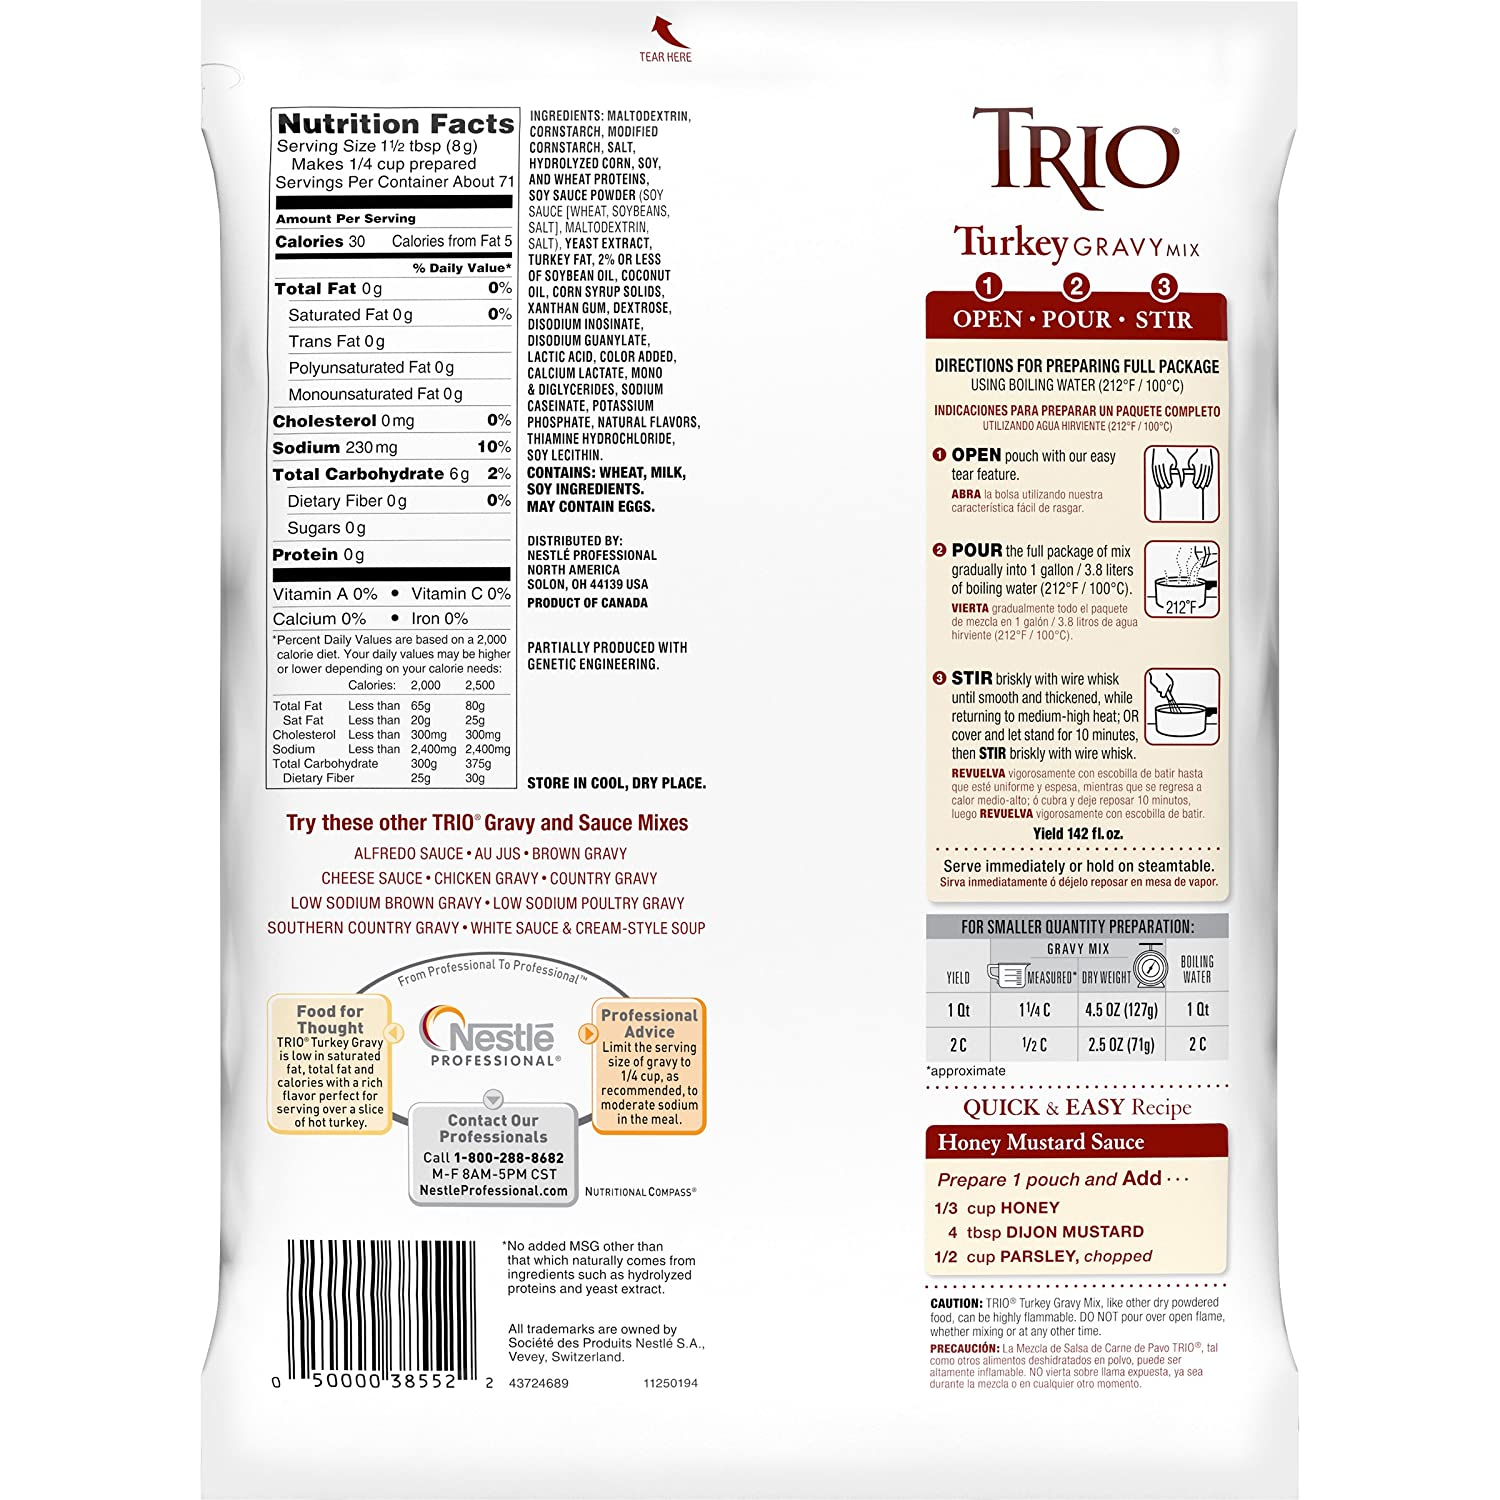 Amazon.com : Trio Turkey Gravy Mix, Holiday Roast, Dehydrated, Just Add Water, 20 oz Bag : Grocery & Gourmet Food